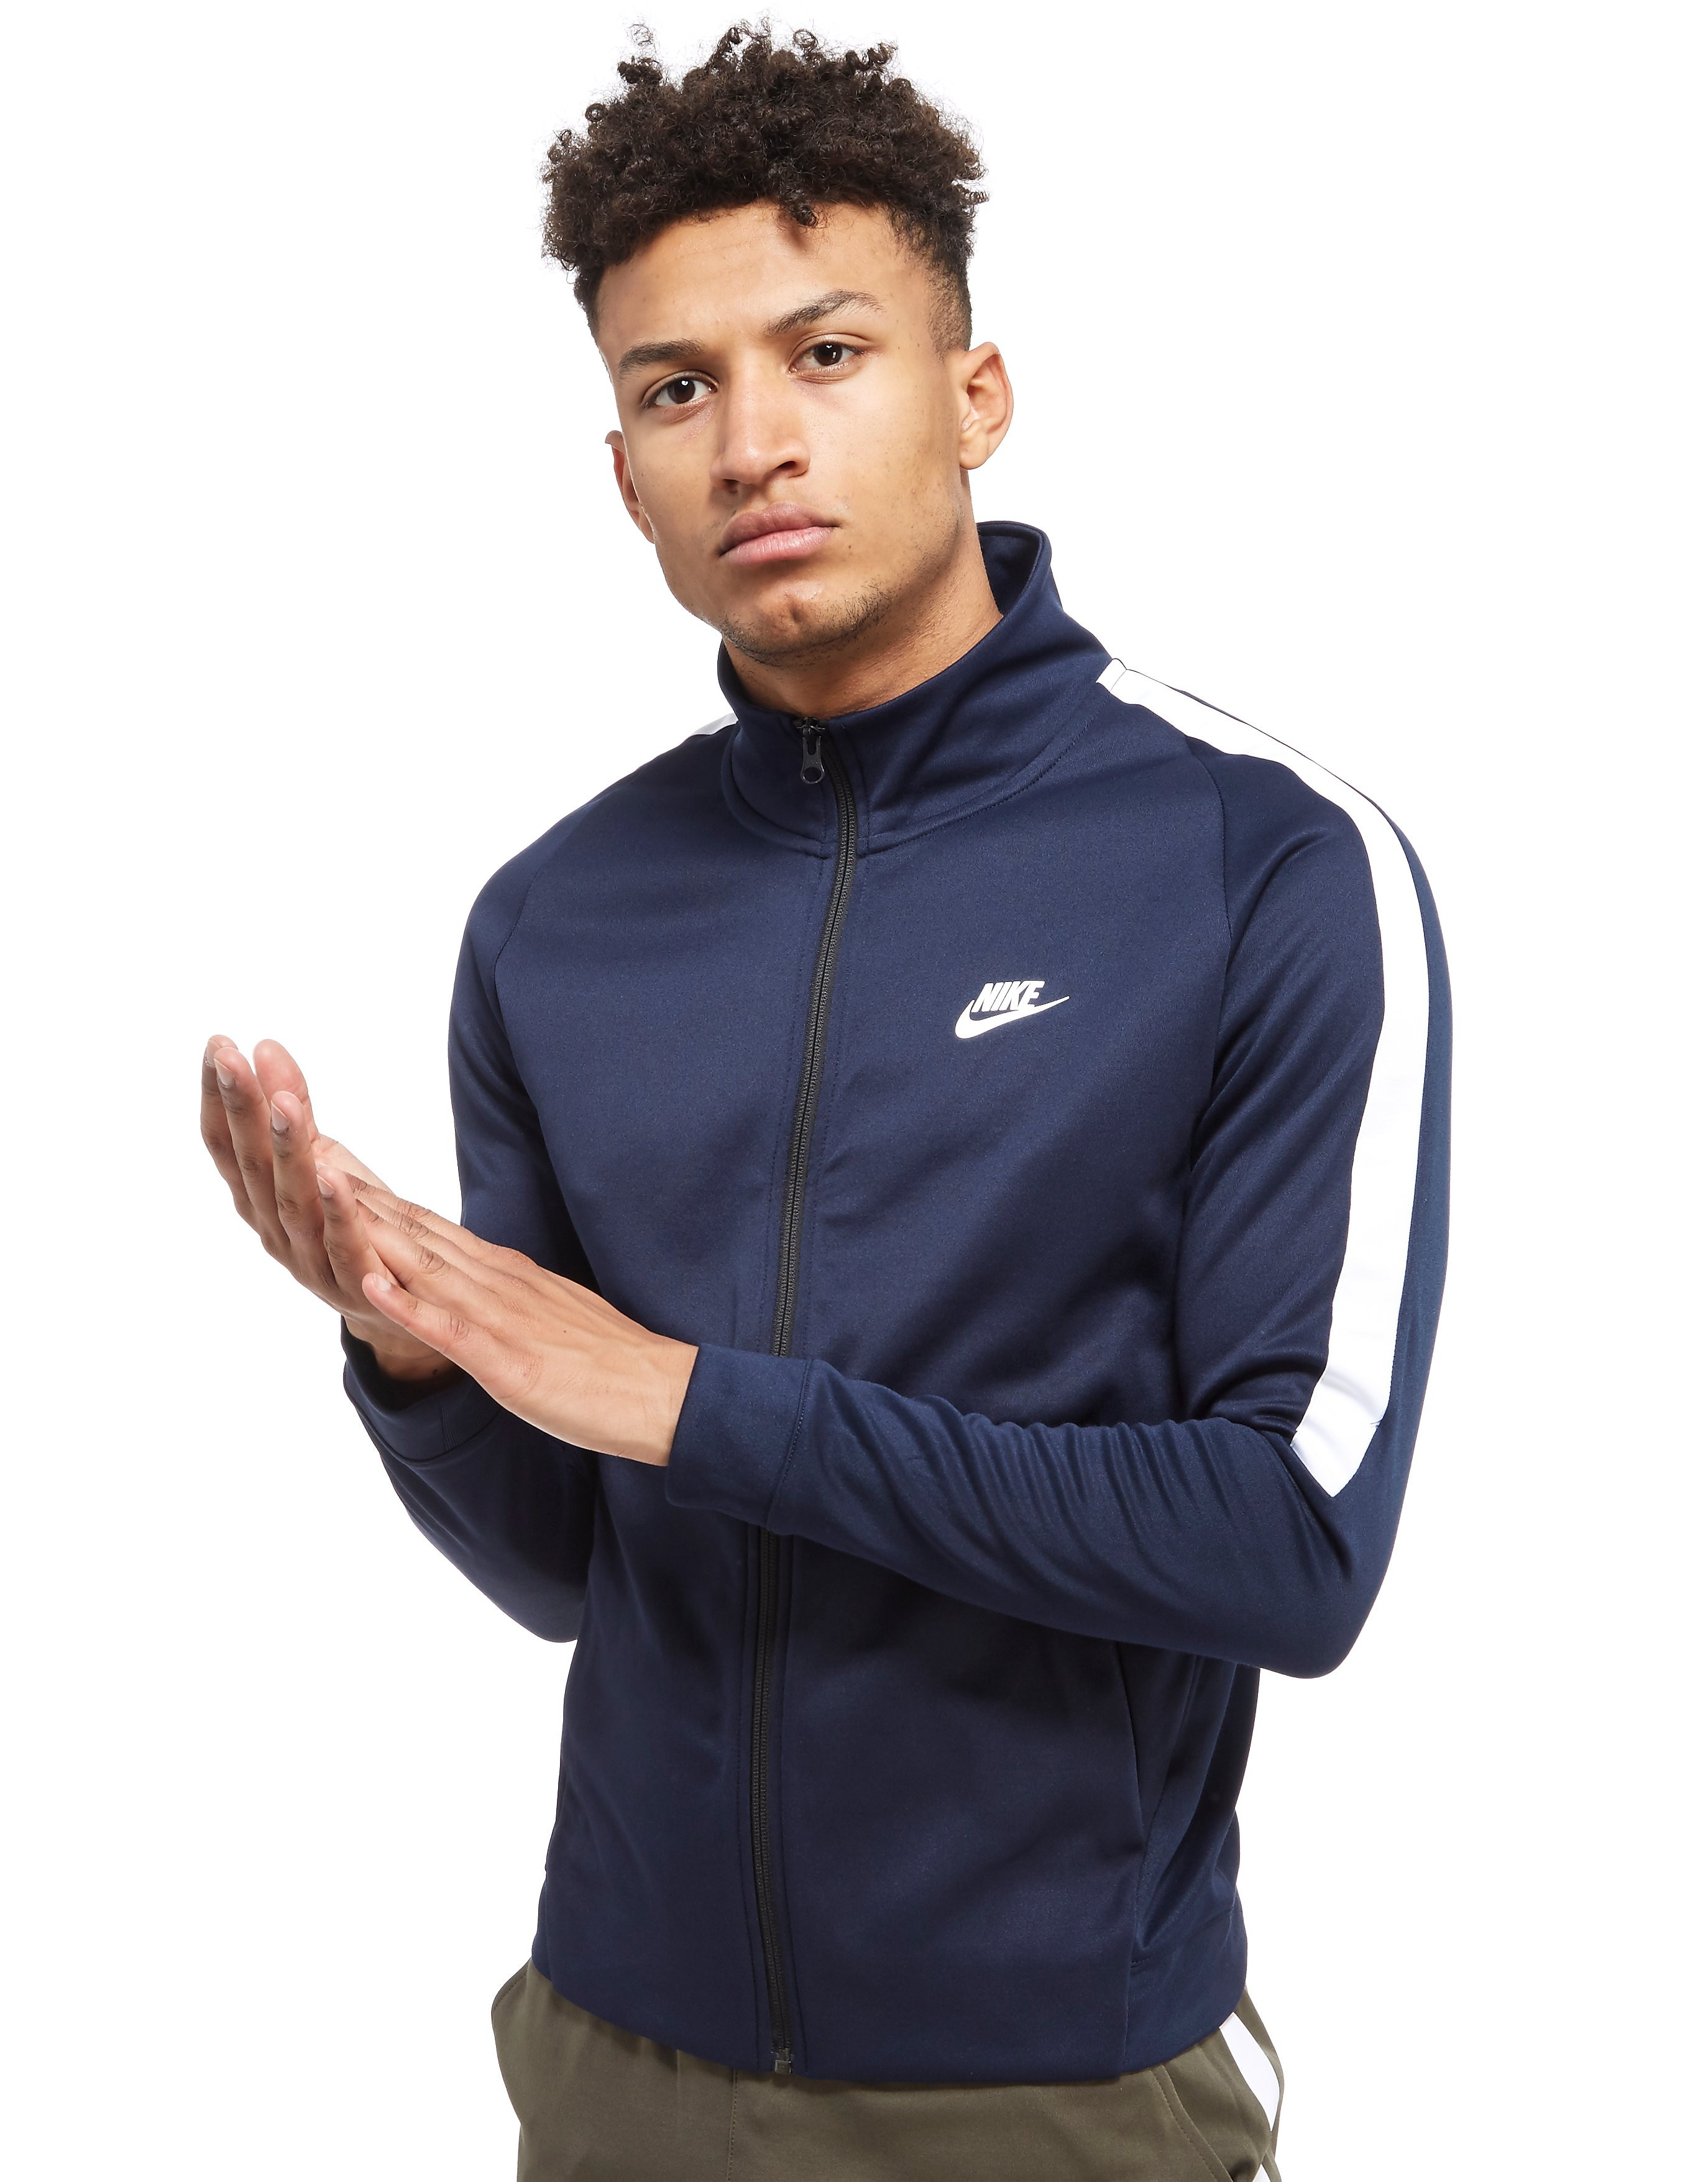 Nike Tribute Track Top